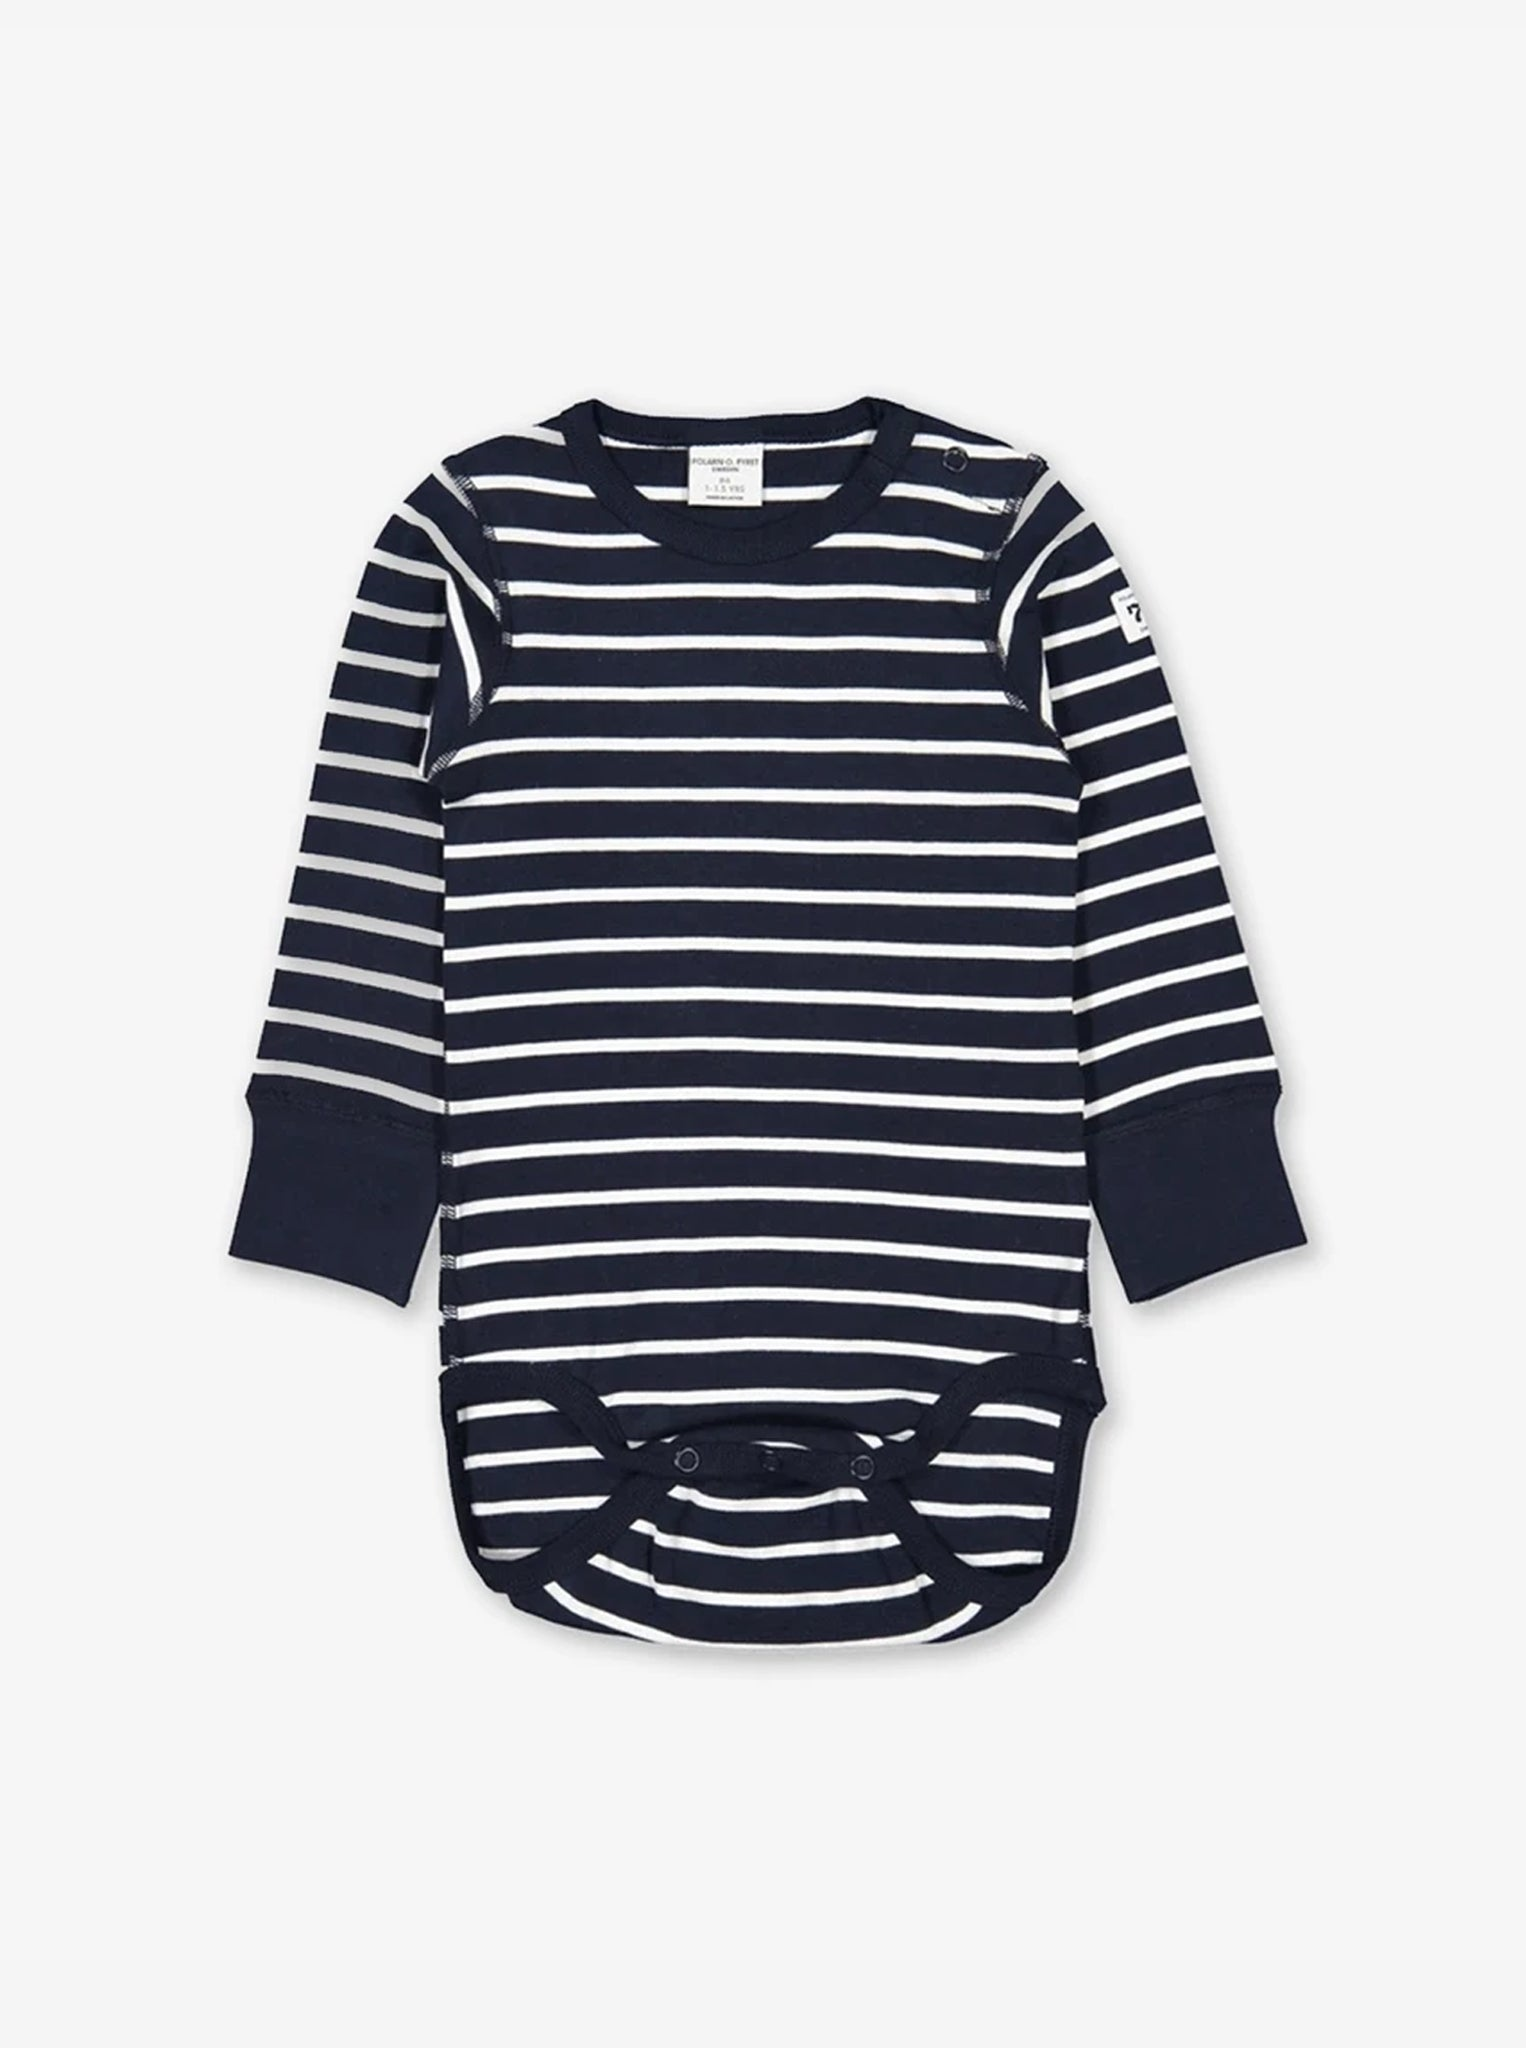 Front view of a long sleeve blue and white striped unisex babygrow with poppers, made from 100% organic cotton fabric.